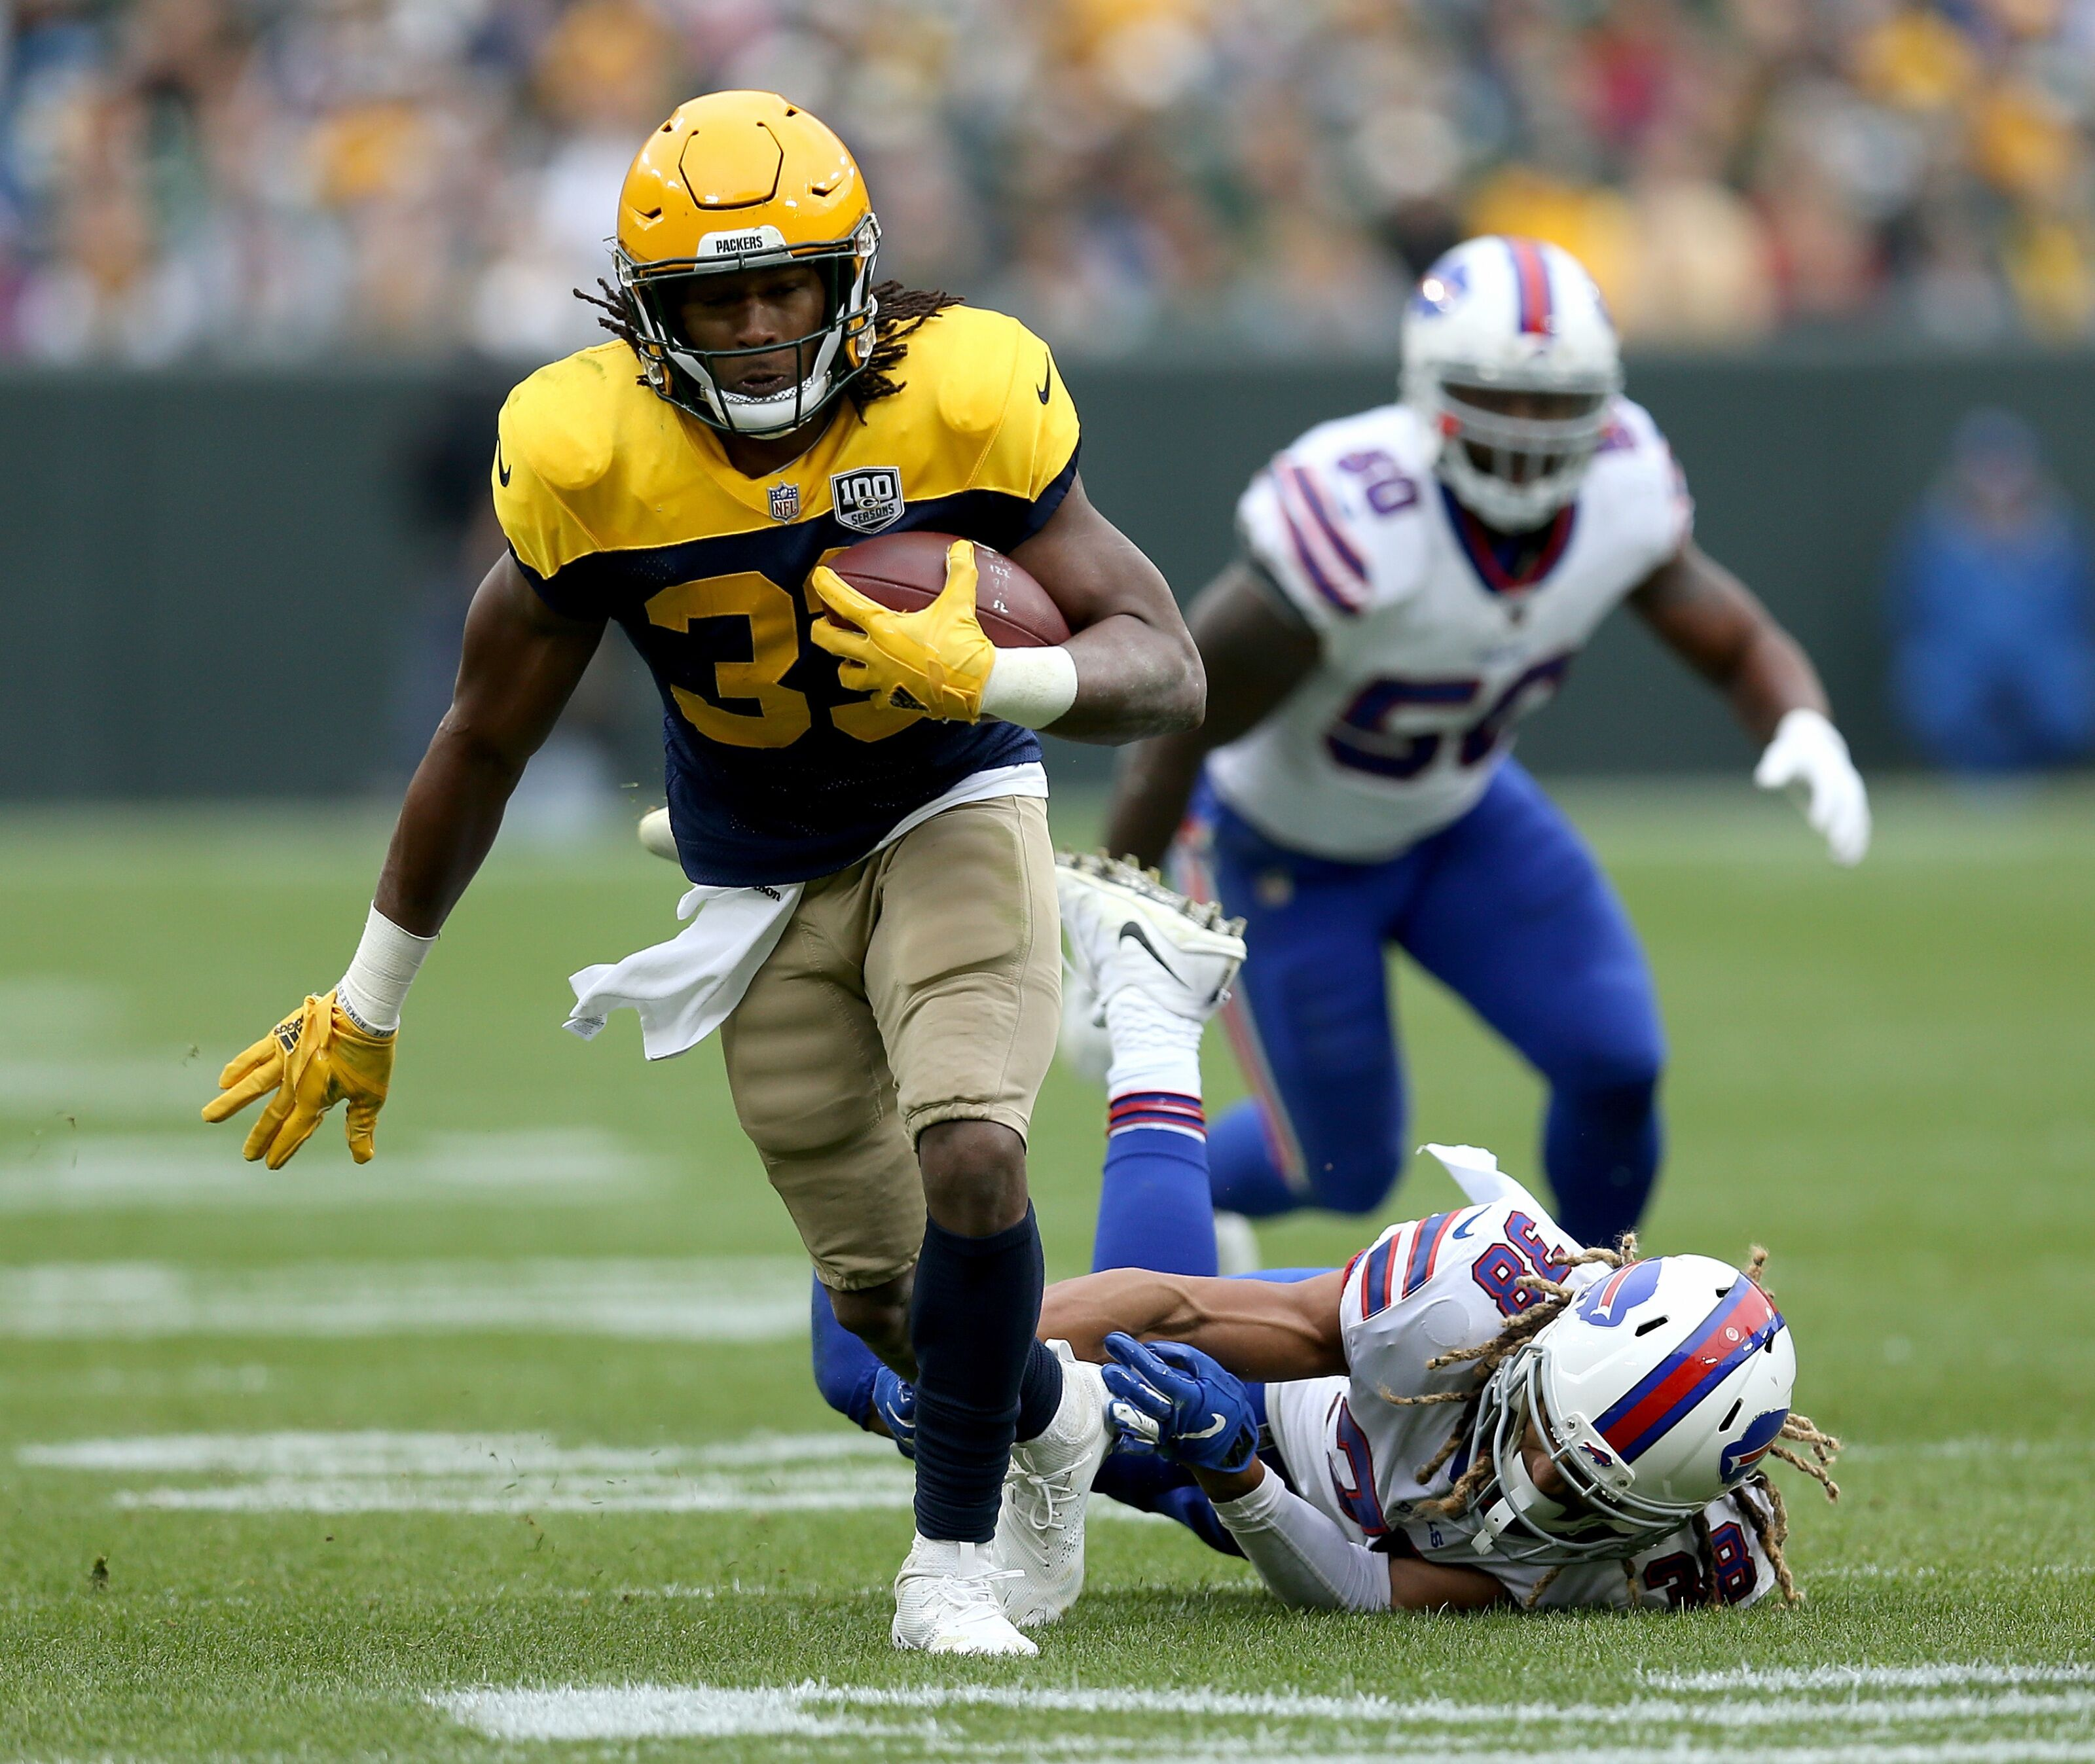 b058777b955 Packers News  Aaron Jones playing at Pro Bowl level